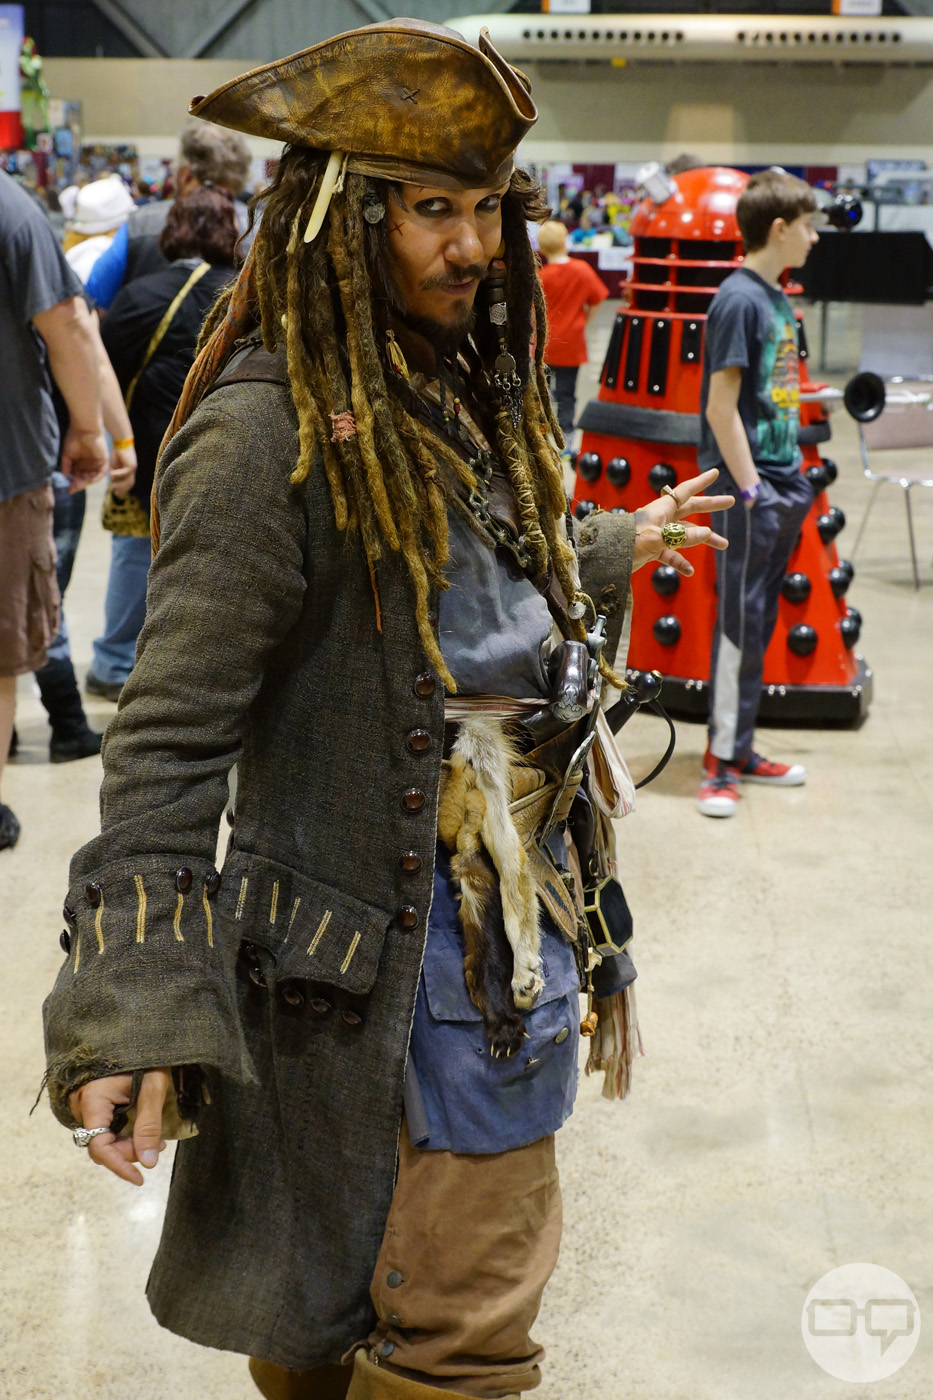 Planet-Comicon-2015-ProNerd-Cosplay-D1-7